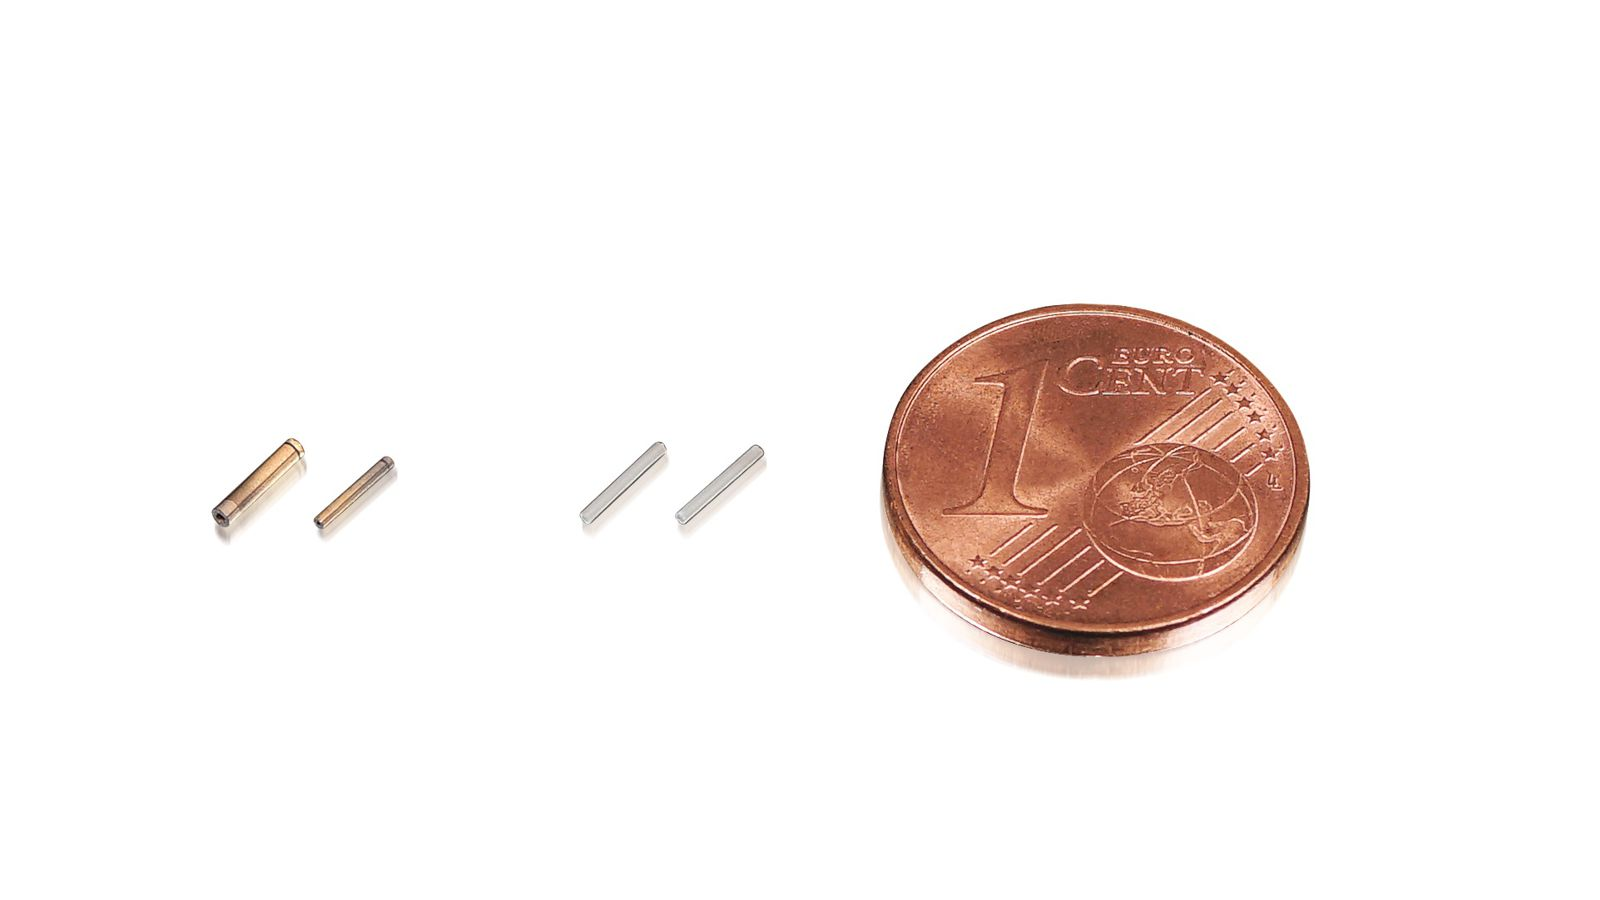 Piezo Ceramic Technology Actuators Components From Pi Circuit Bending Tutorial 1 Saving Money Youtube Piezoelectric Tubes In Miniature Format For Actuator Applications